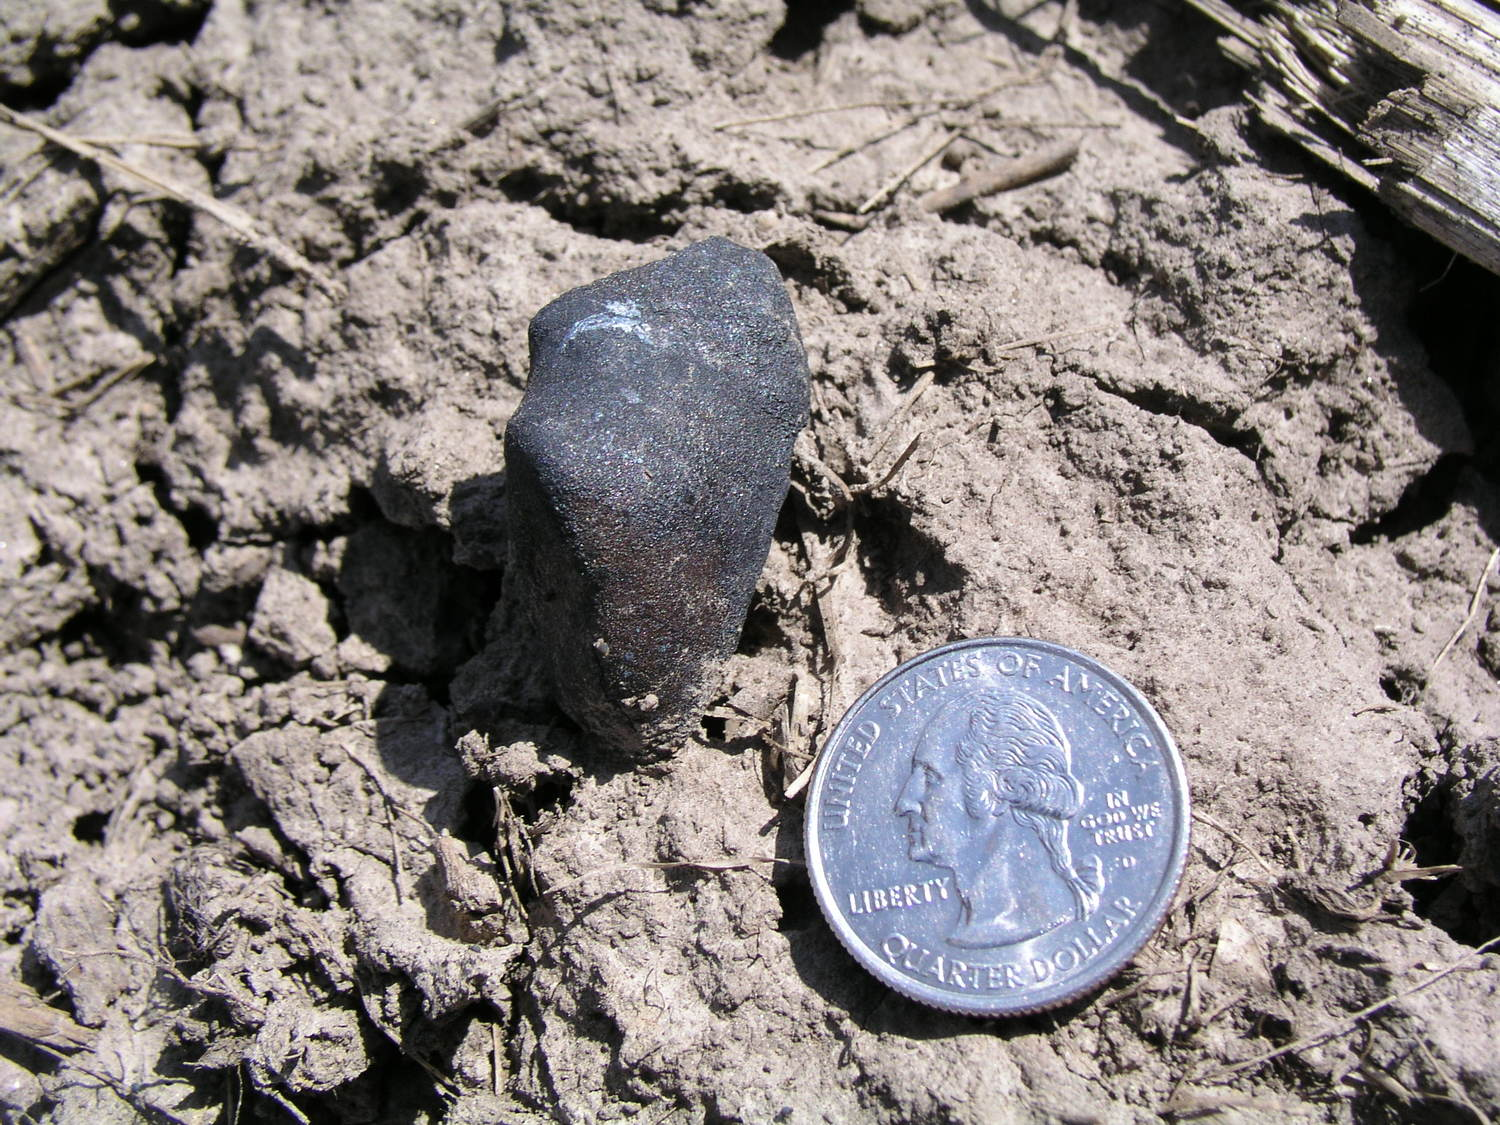 Robert Woolard finds a meteorite!